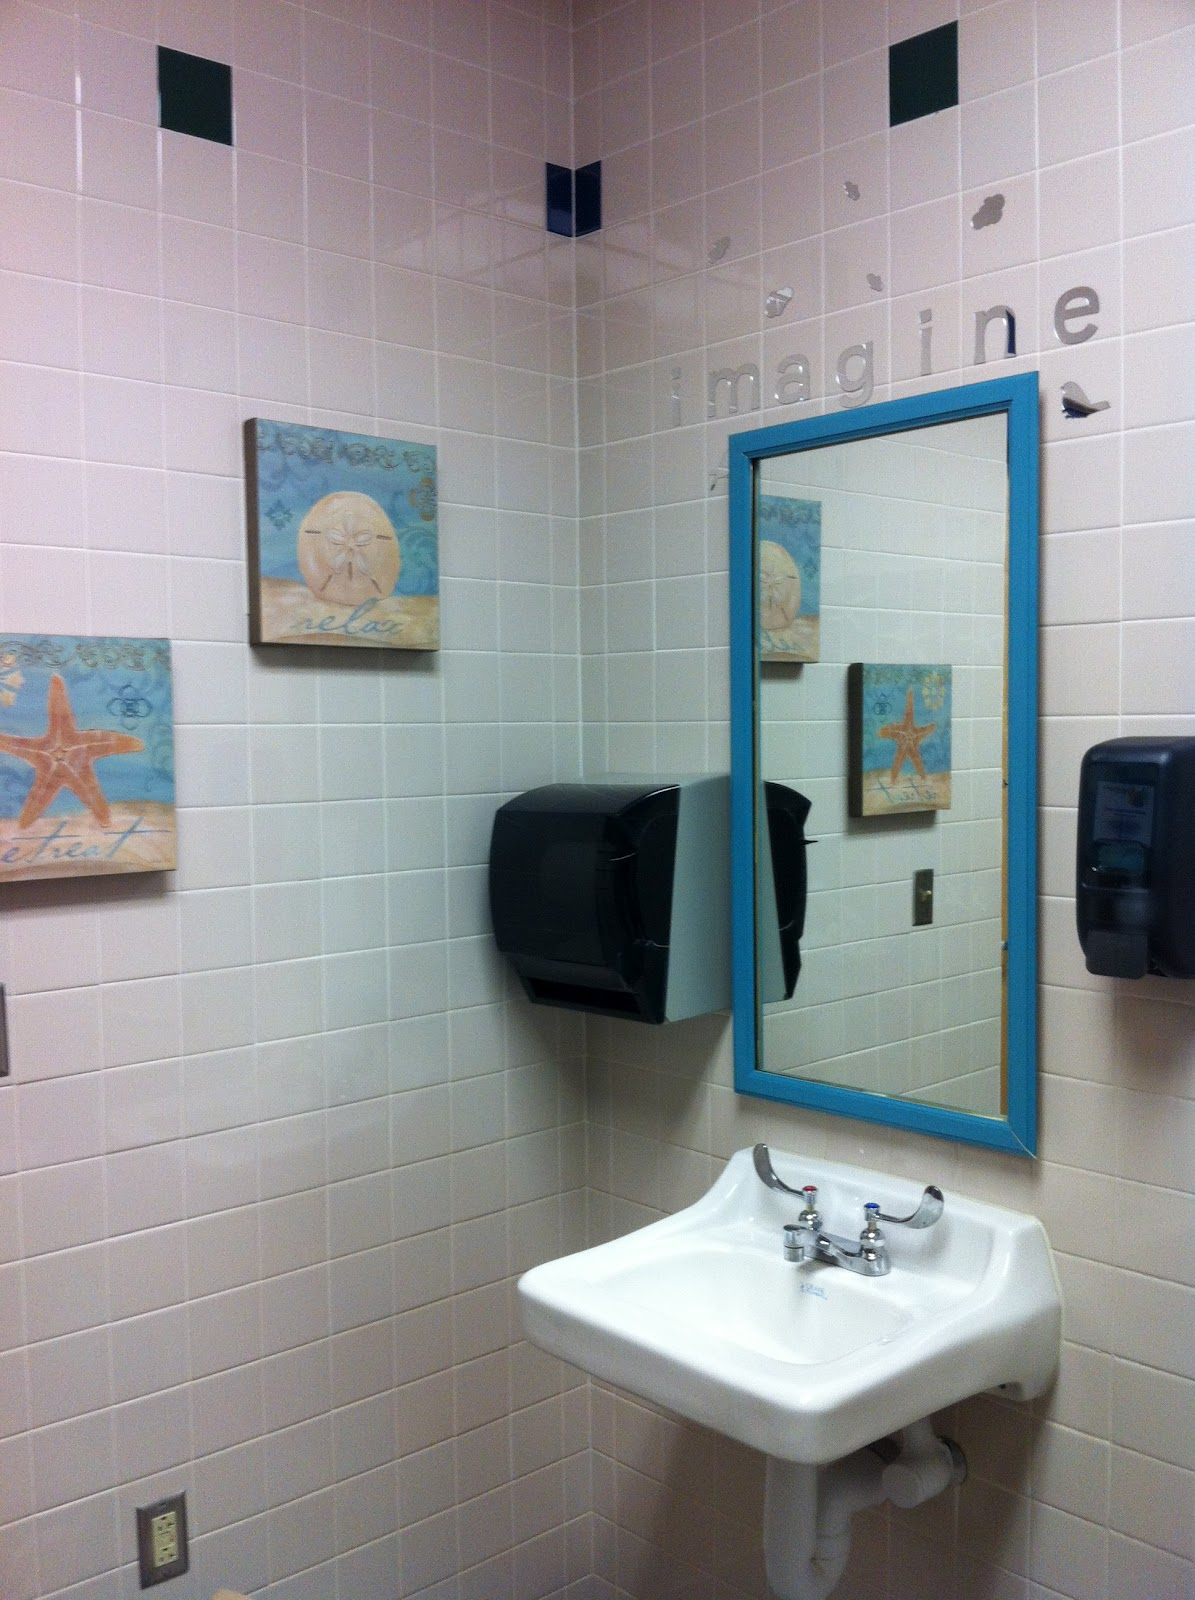 Rulers and recess redecorating teacher bathrooms for Redecorating a small bathroom